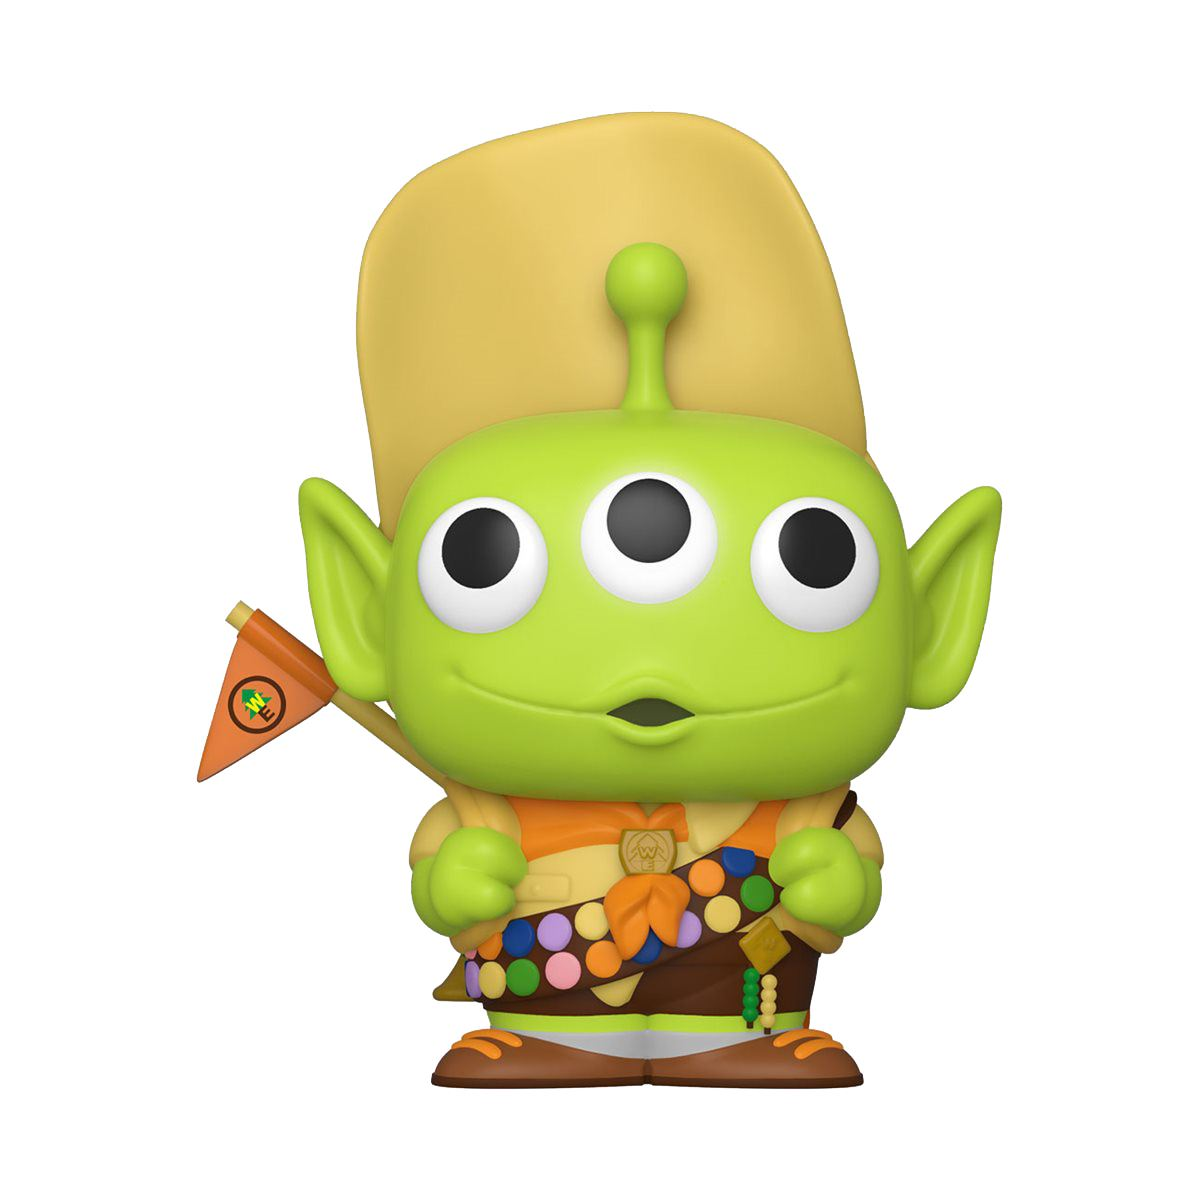 Russel #755 Up Pixar Alien Remix Funko Pop! Disney [PRE-ORDER] Pop! Funko